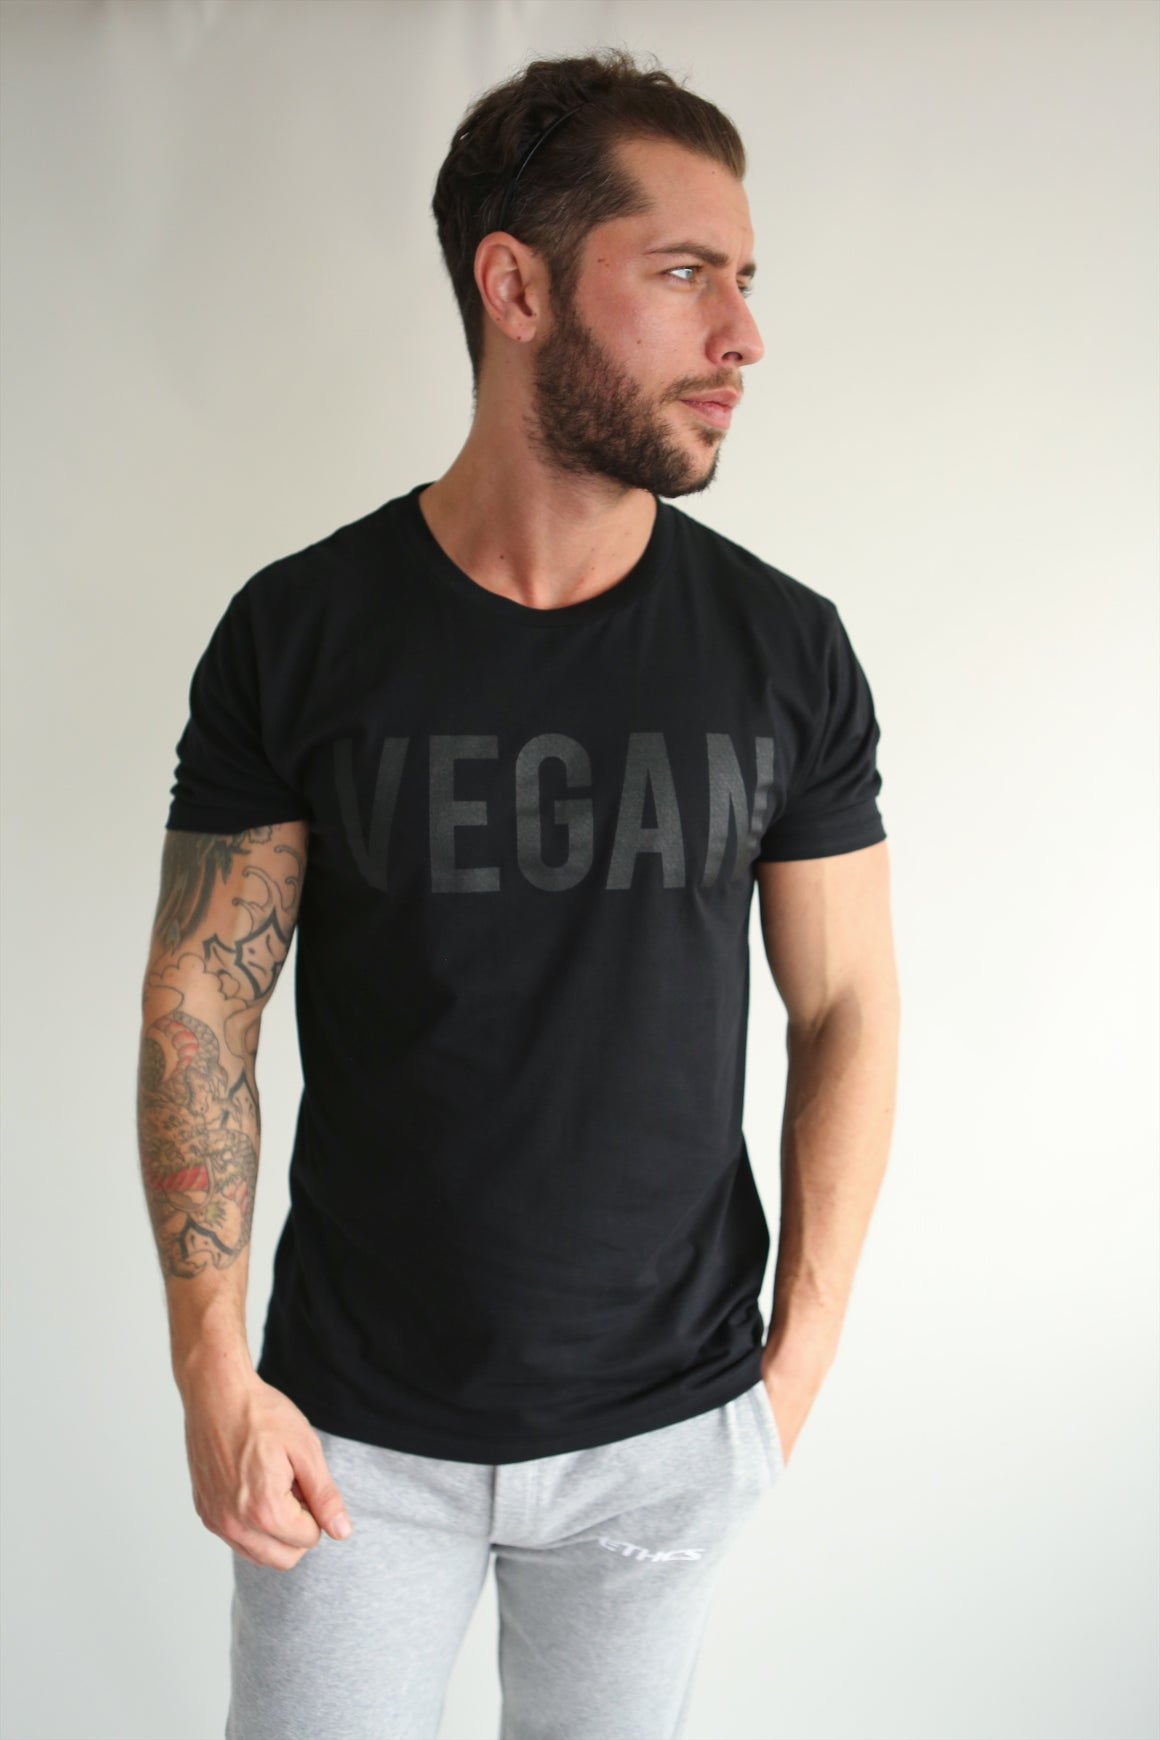 Tee - Ethics and Antics vegan nagev vgang clothing